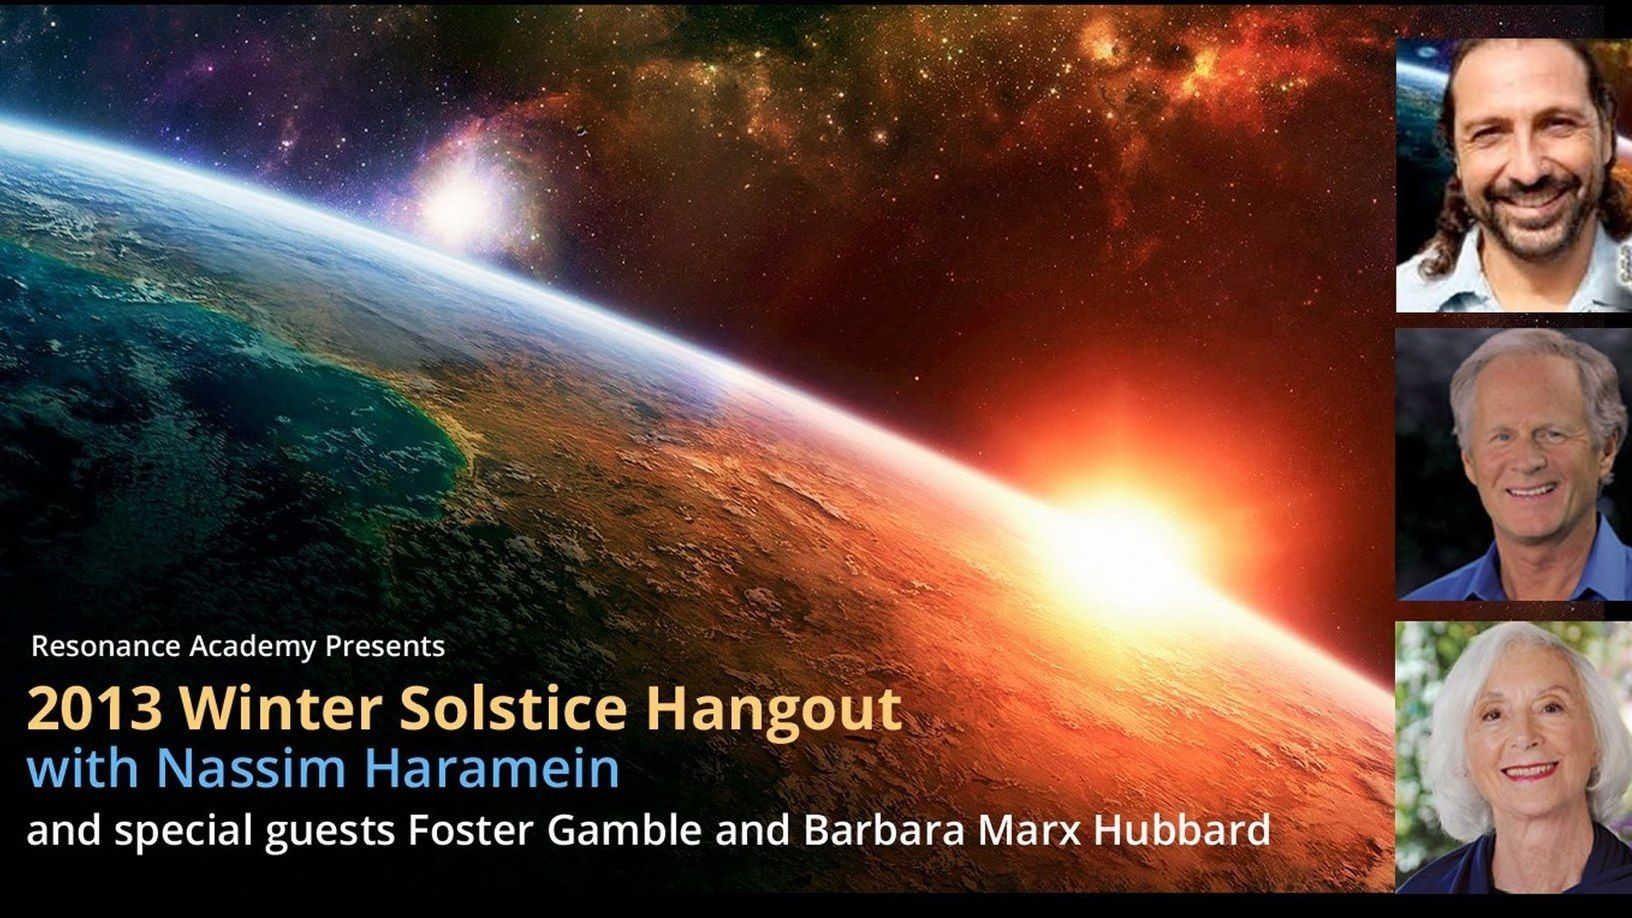 2013 Winter Solstice Hangout with Nassim Haramein, Barbara Marx Hubbard, and Foster Gamble on the Resonance Academy